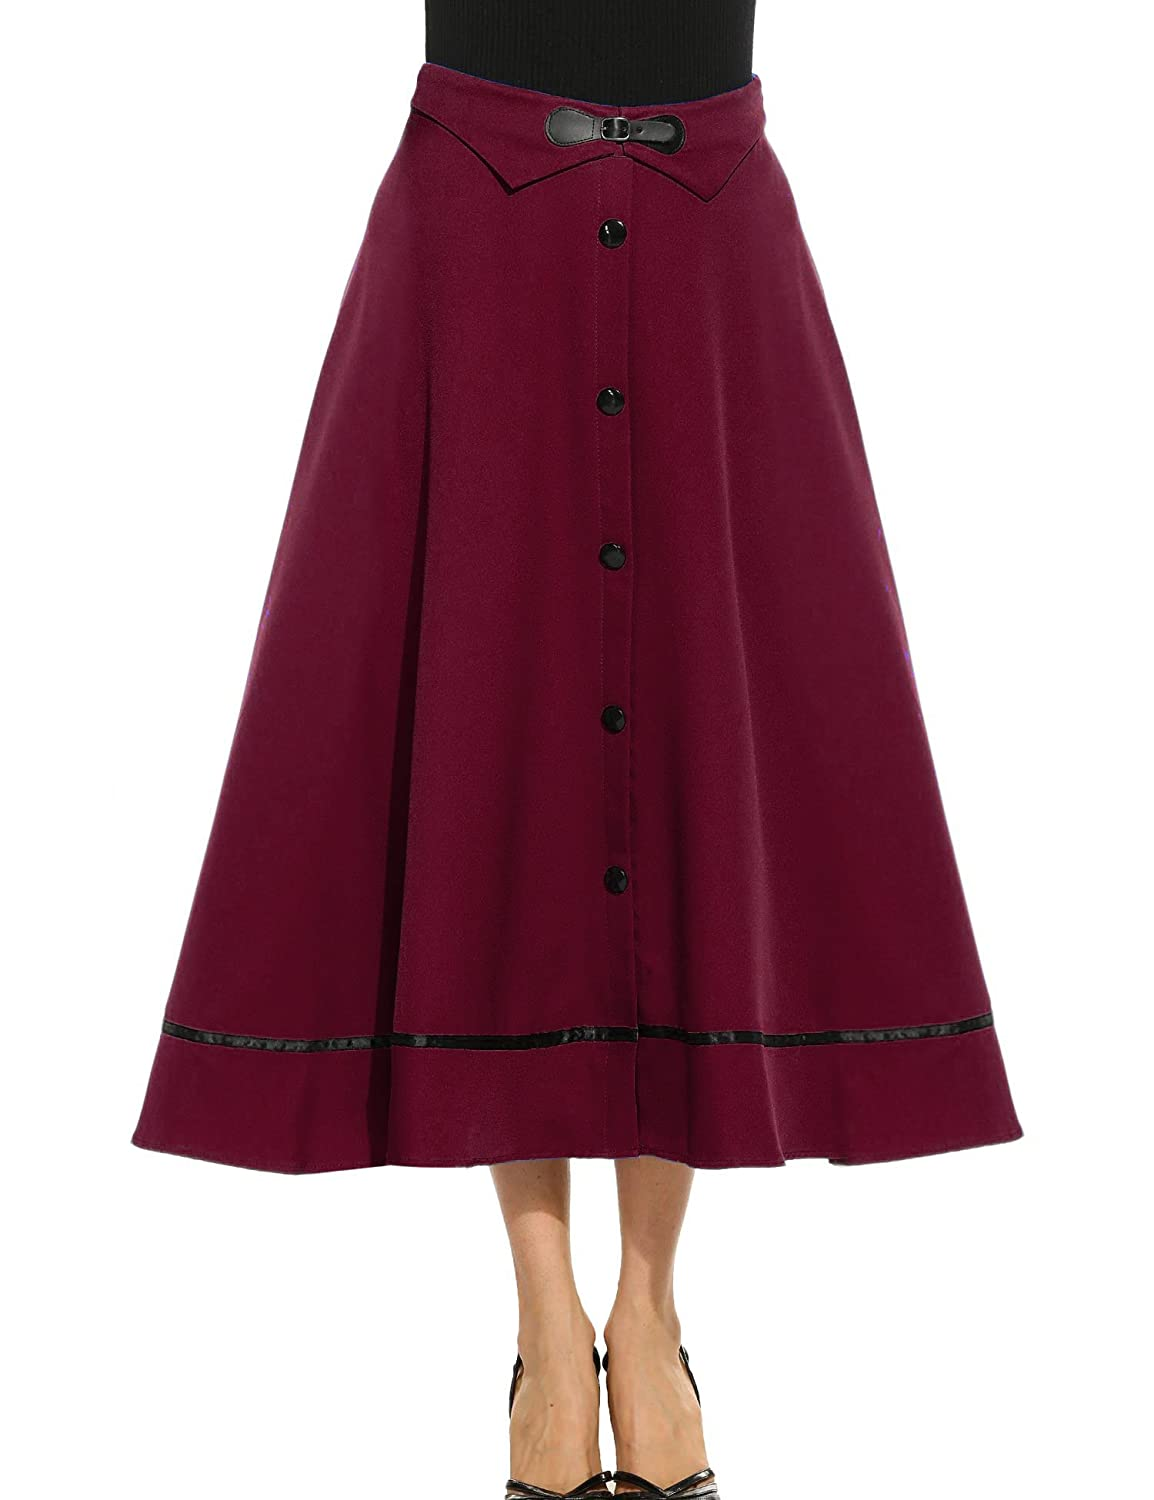 50s Skirt Styles | Poodle Skirts, Circle Skirts, Pencil Skirts 1950s ANGVNS Womens Vintage High Waist Button Down Pleated Swing Skirt $18.99 AT vintagedancer.com